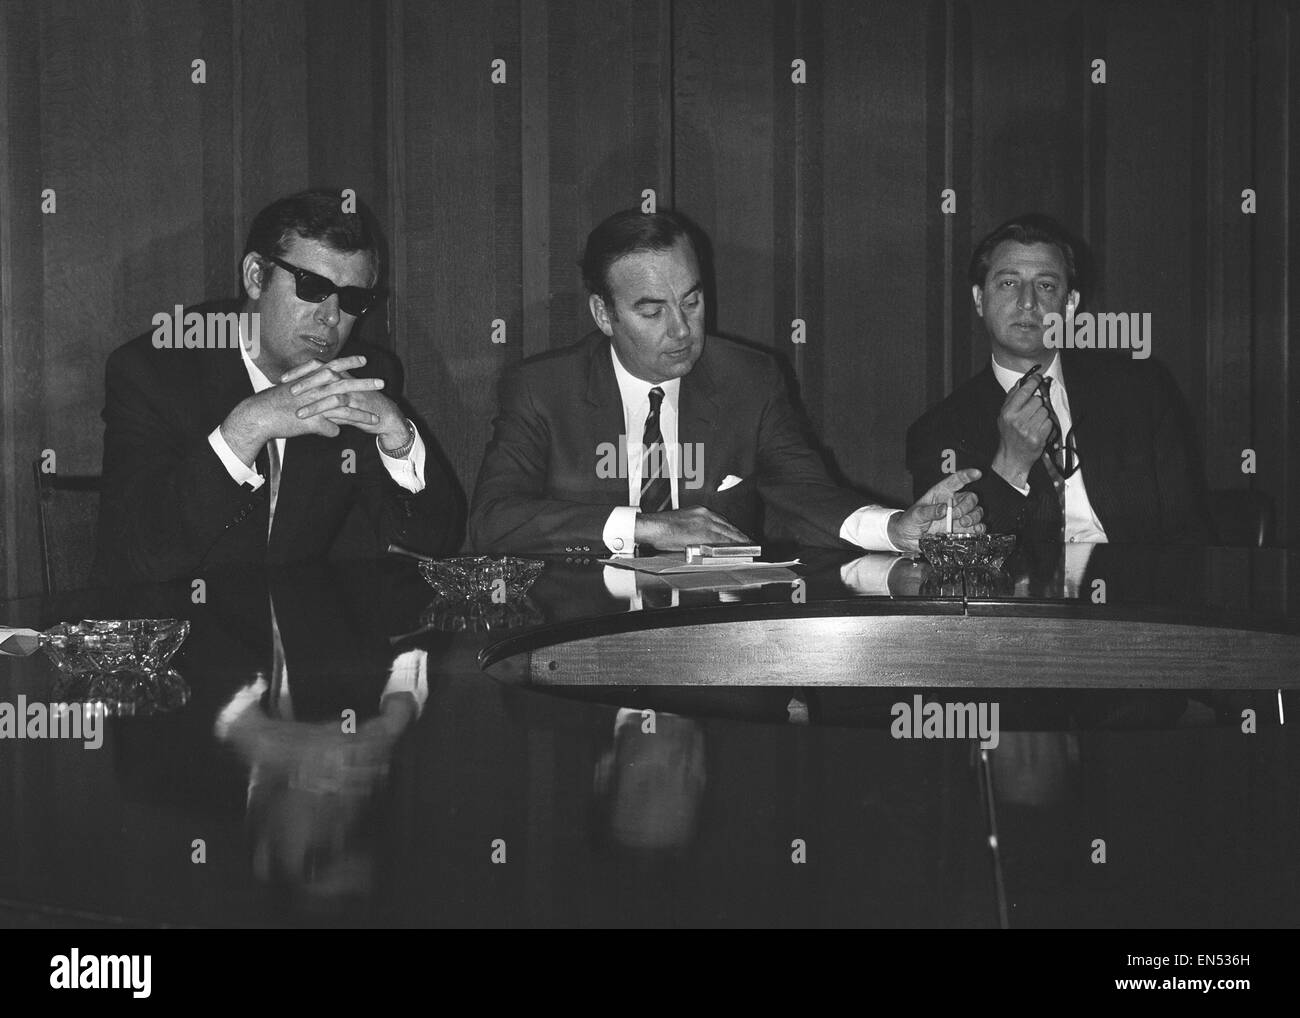 Rupert Murdoch (centre) with Albert Larry Lamb seen here at a press conference a few days before the relaunch of - Stock Image